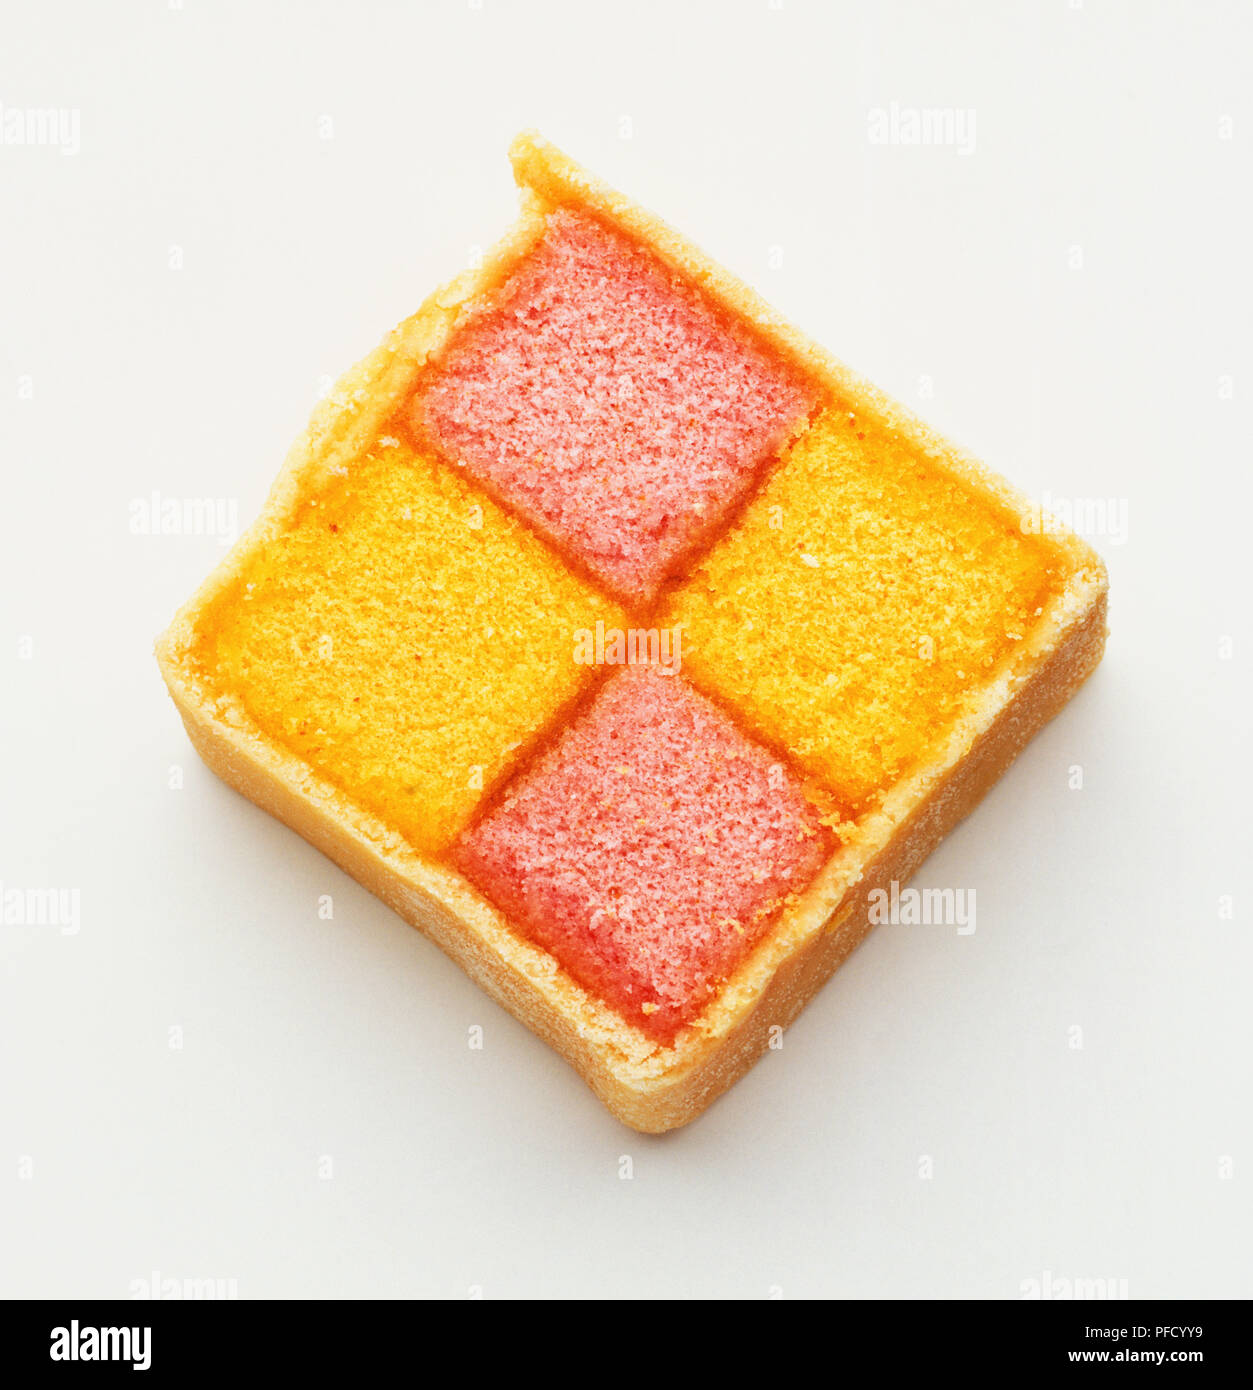 Square slice of iced pink and yellow sponge Battenburg cake, close up. - Stock Image